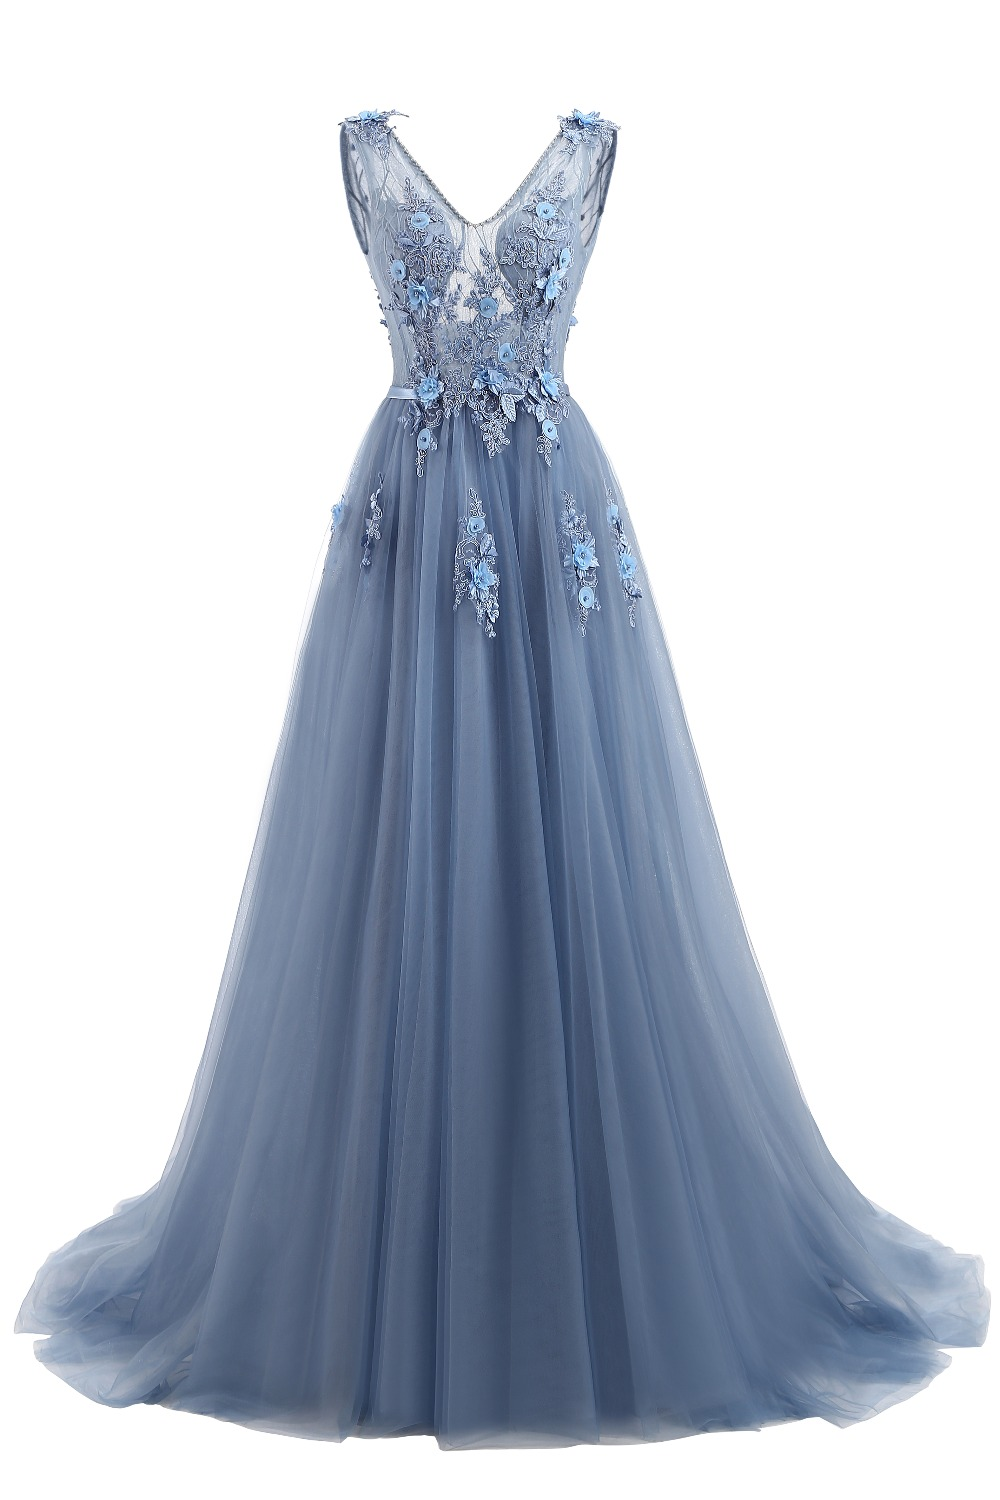 Elie Saab Blue Evening Dresses 2018 Plus Size Tulle Appliques Long Formal Dresses Gowns V Neck Lace Up Sleeveless Robe De Soiree 3